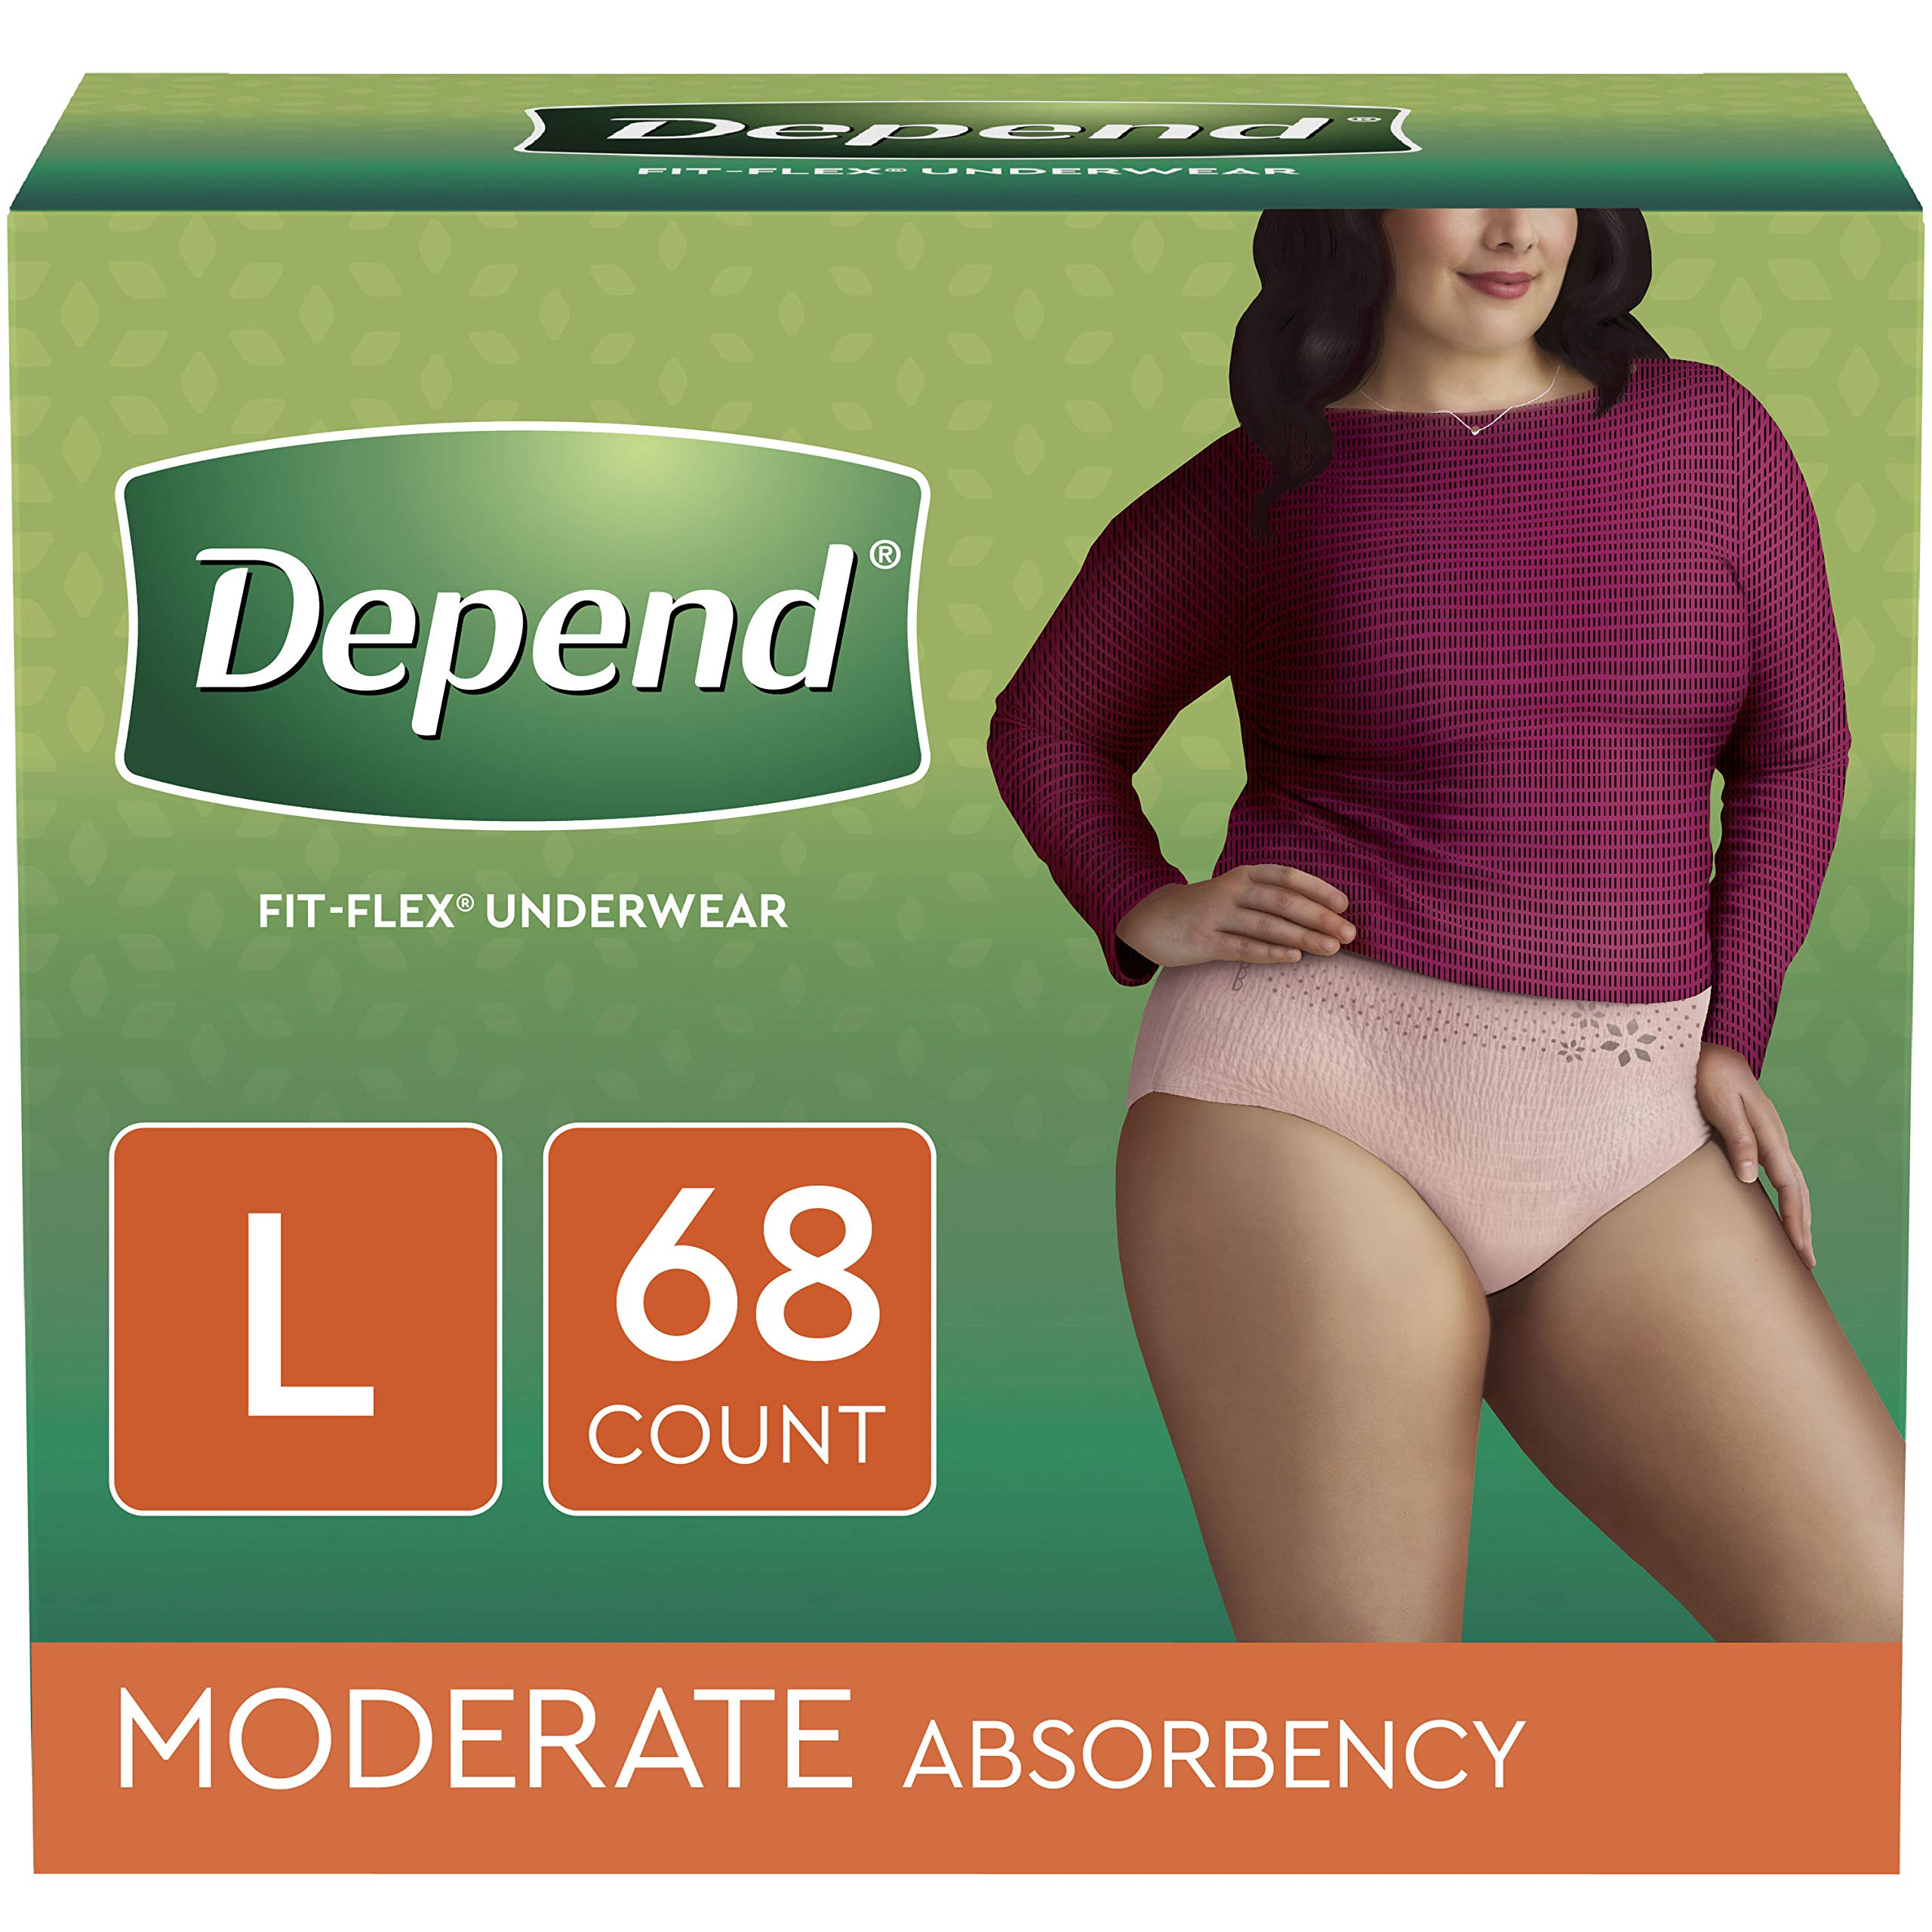 Depend FIT-FLEX Incontinence Underwear for Women, Disposable, Moderate Absorbency, L, Blush, 68 Count by Depend